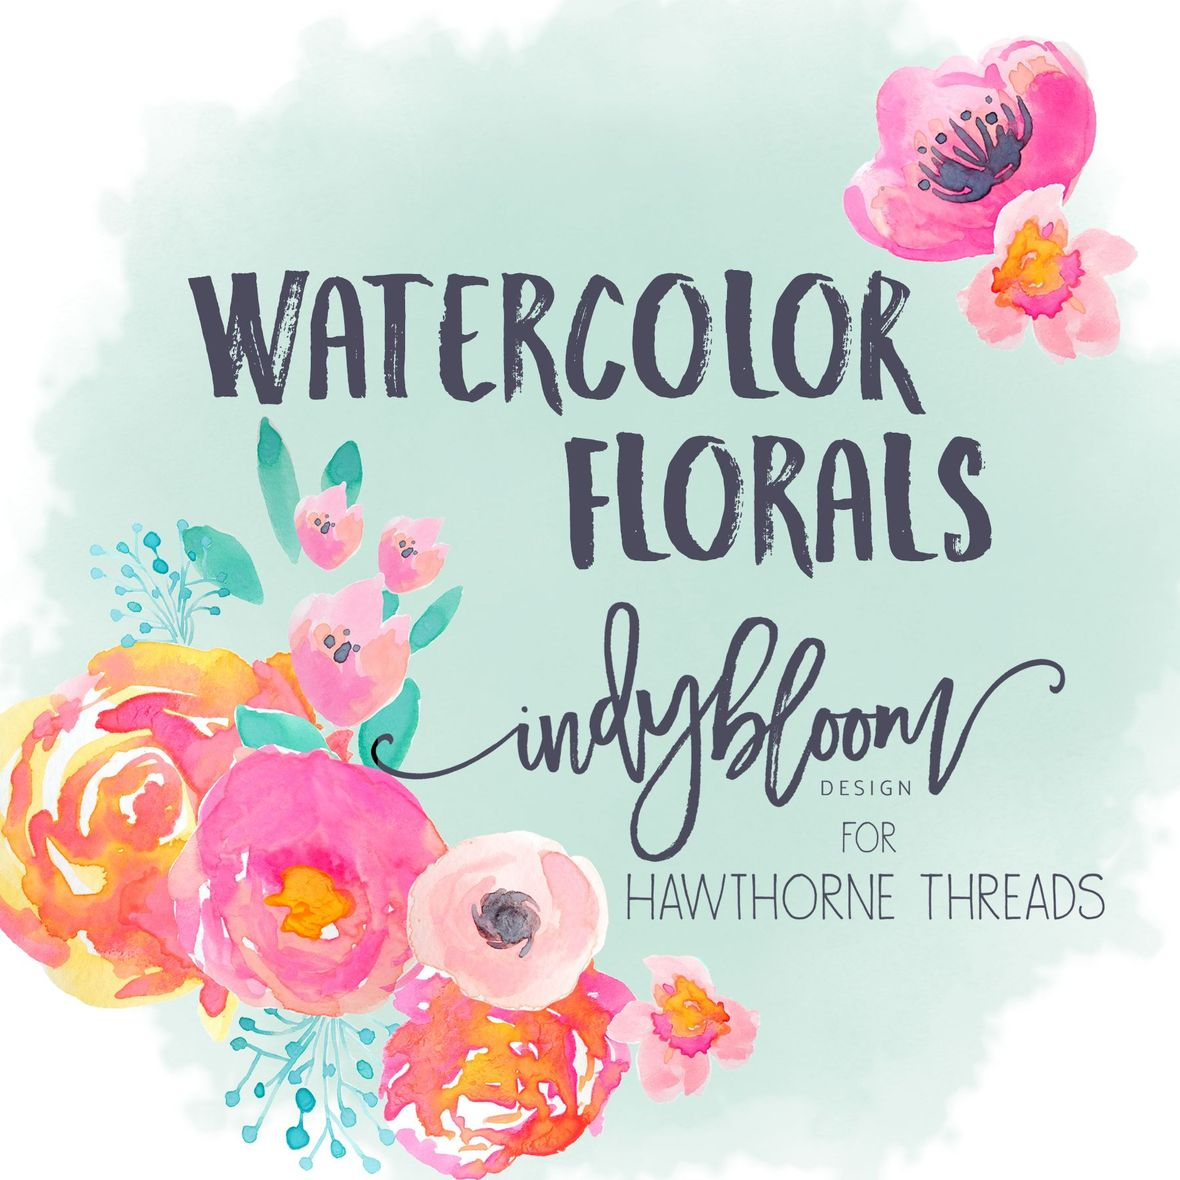 Watercolor Florals by Indy Bloom for Hawthorne Threads